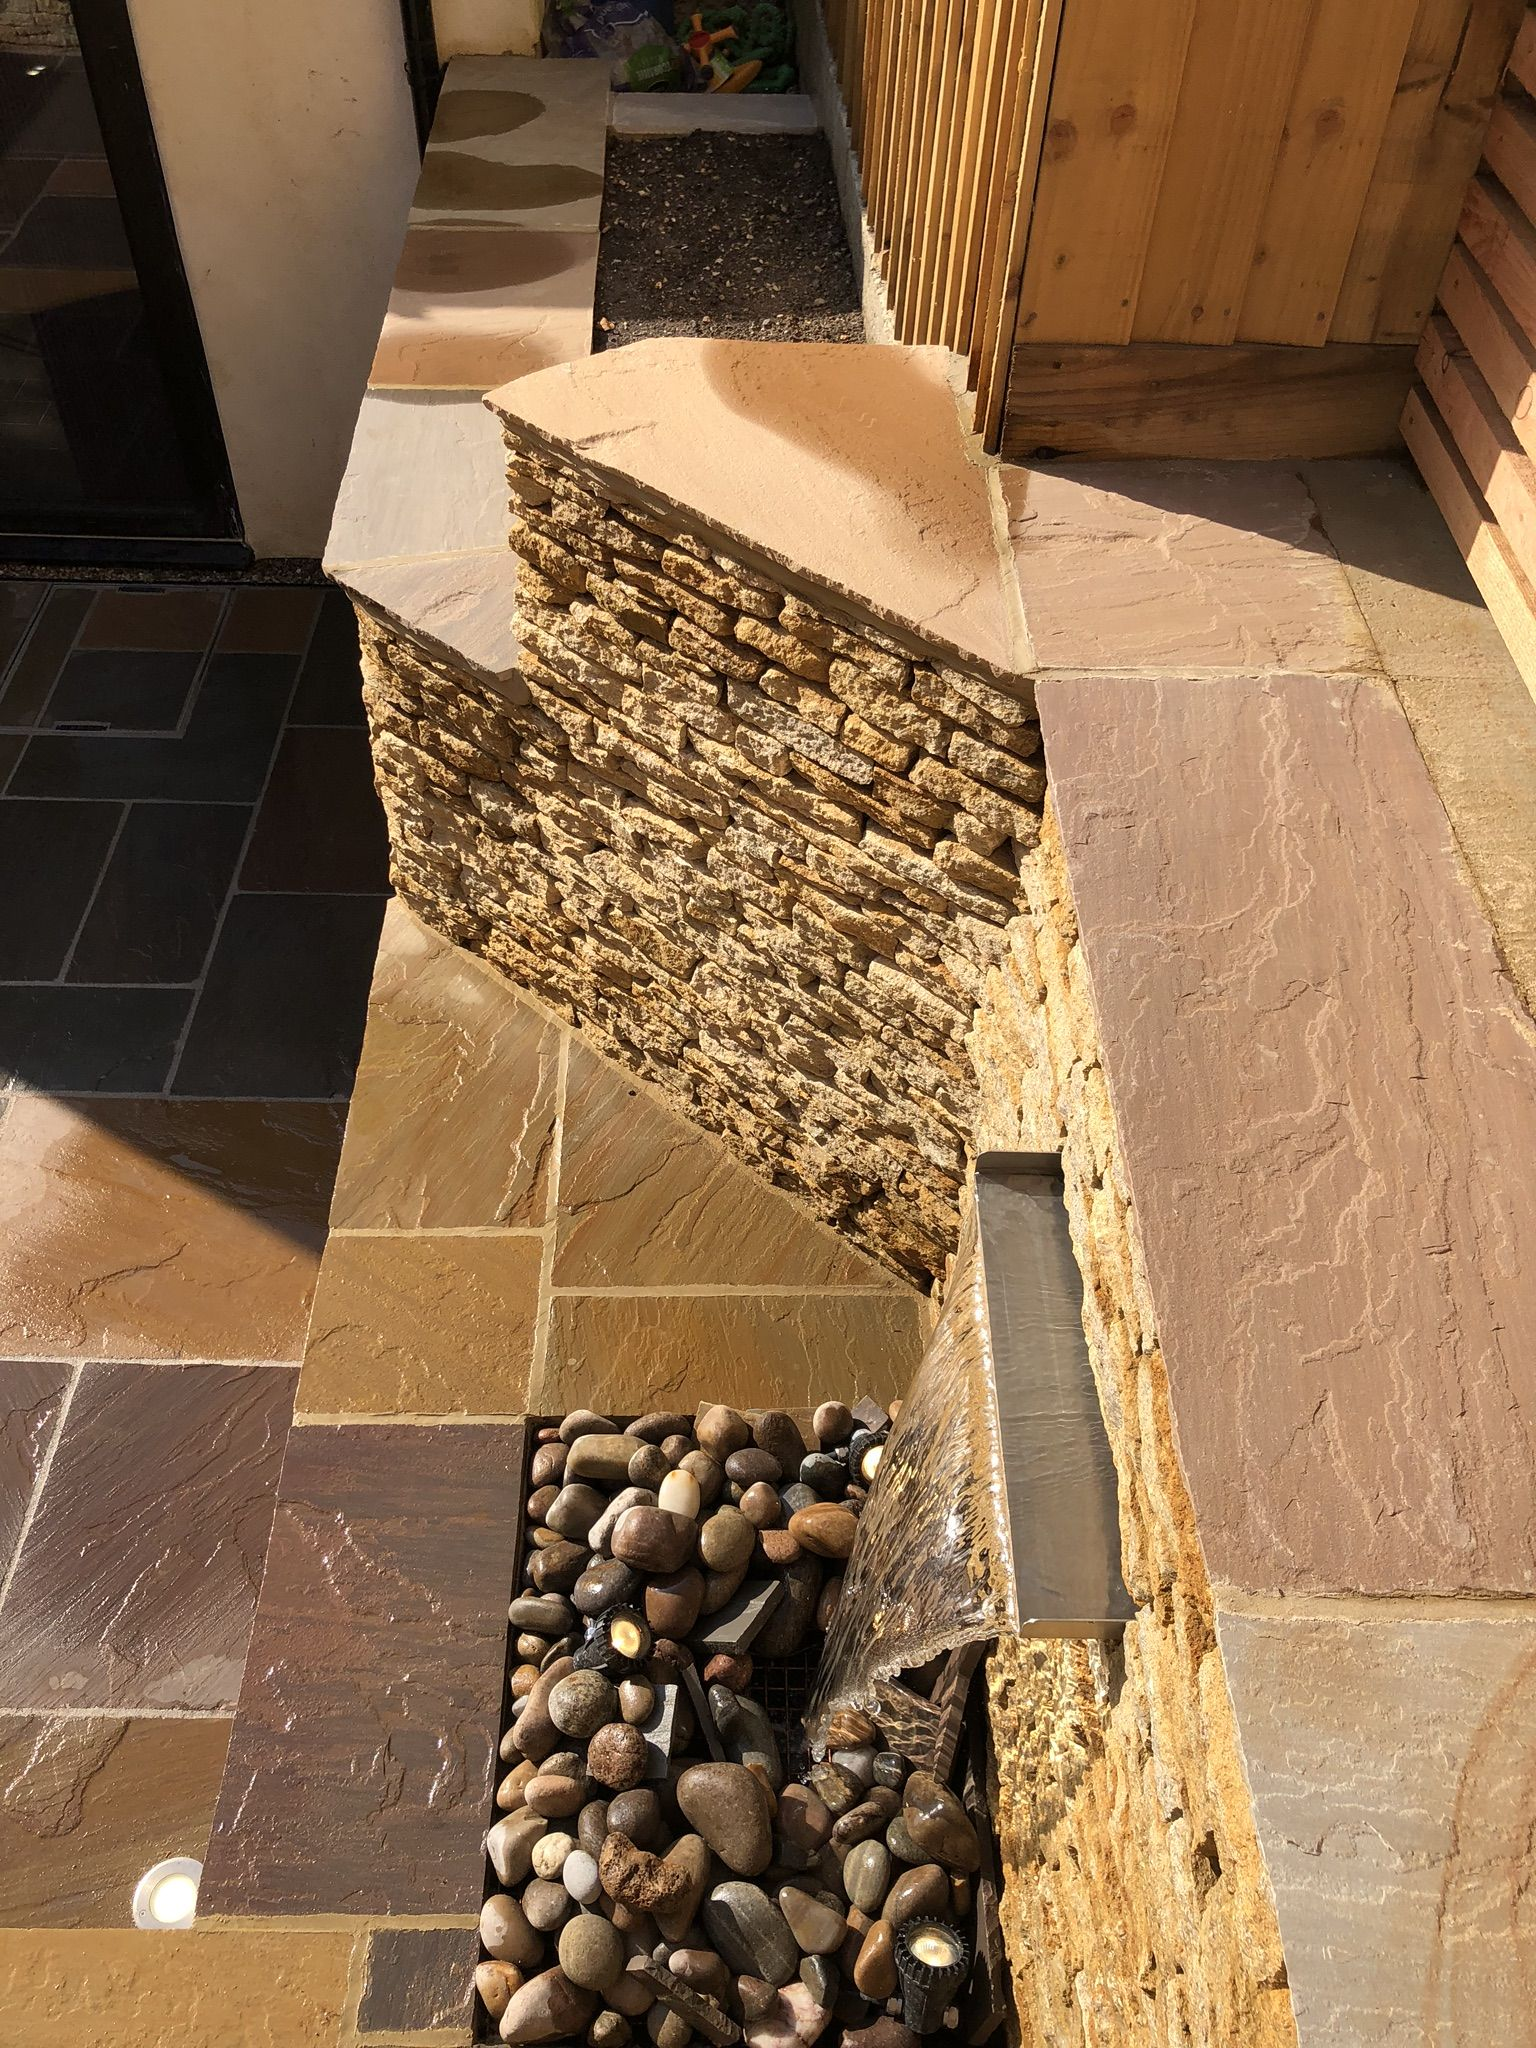 Stone walling and water feature.